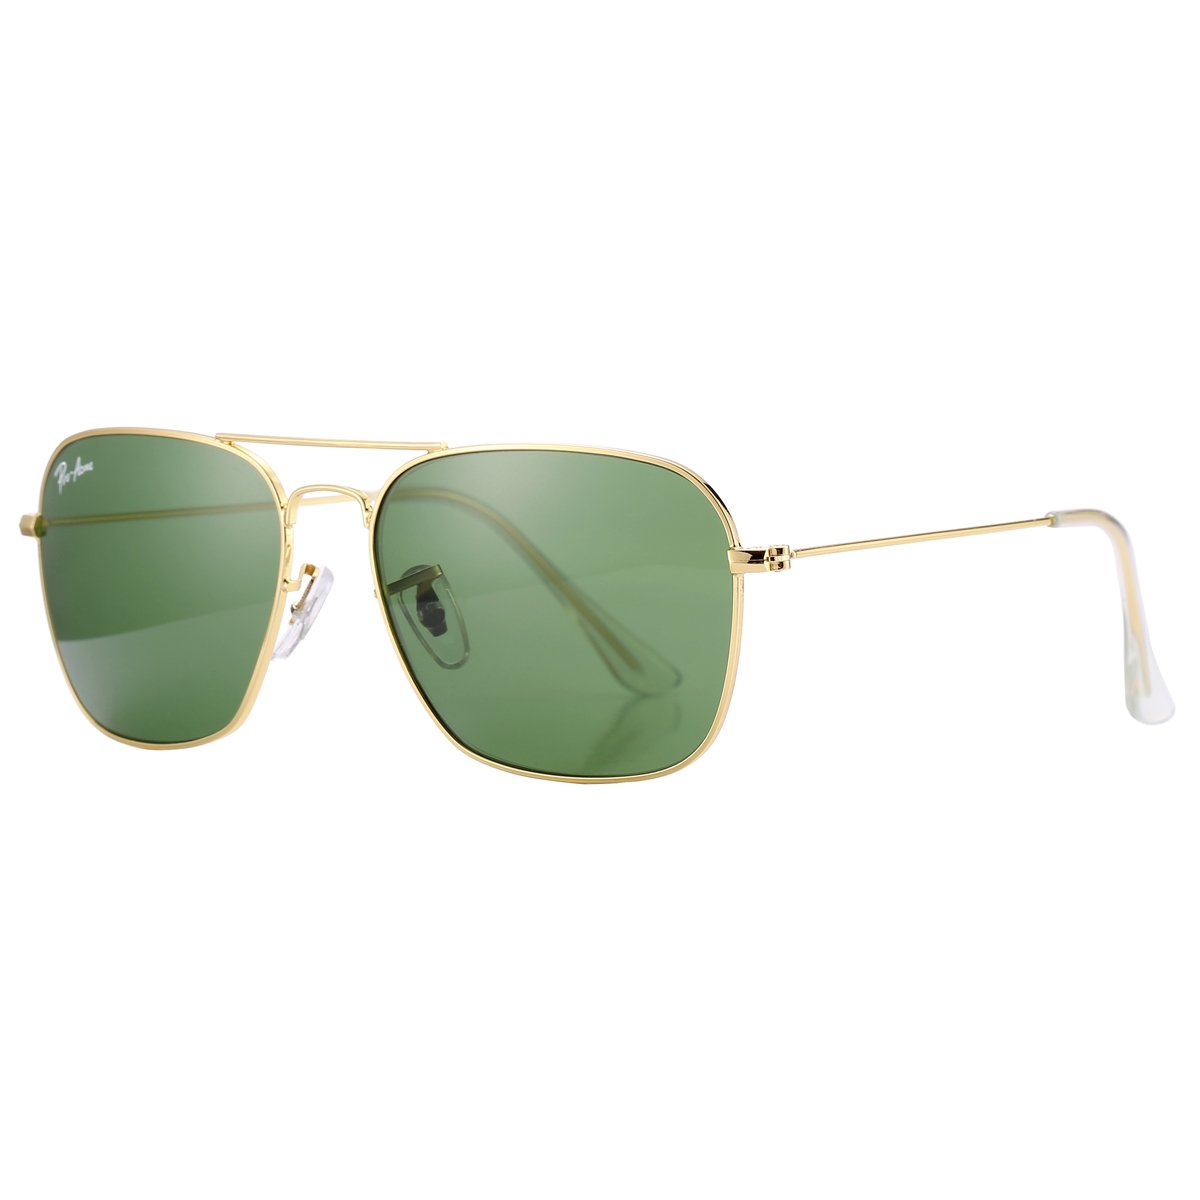 Pro Acme PA3136 Crystal Lens Square Sunglasses (Gold Frame/Crystal G15 Lens) by Pro Acme